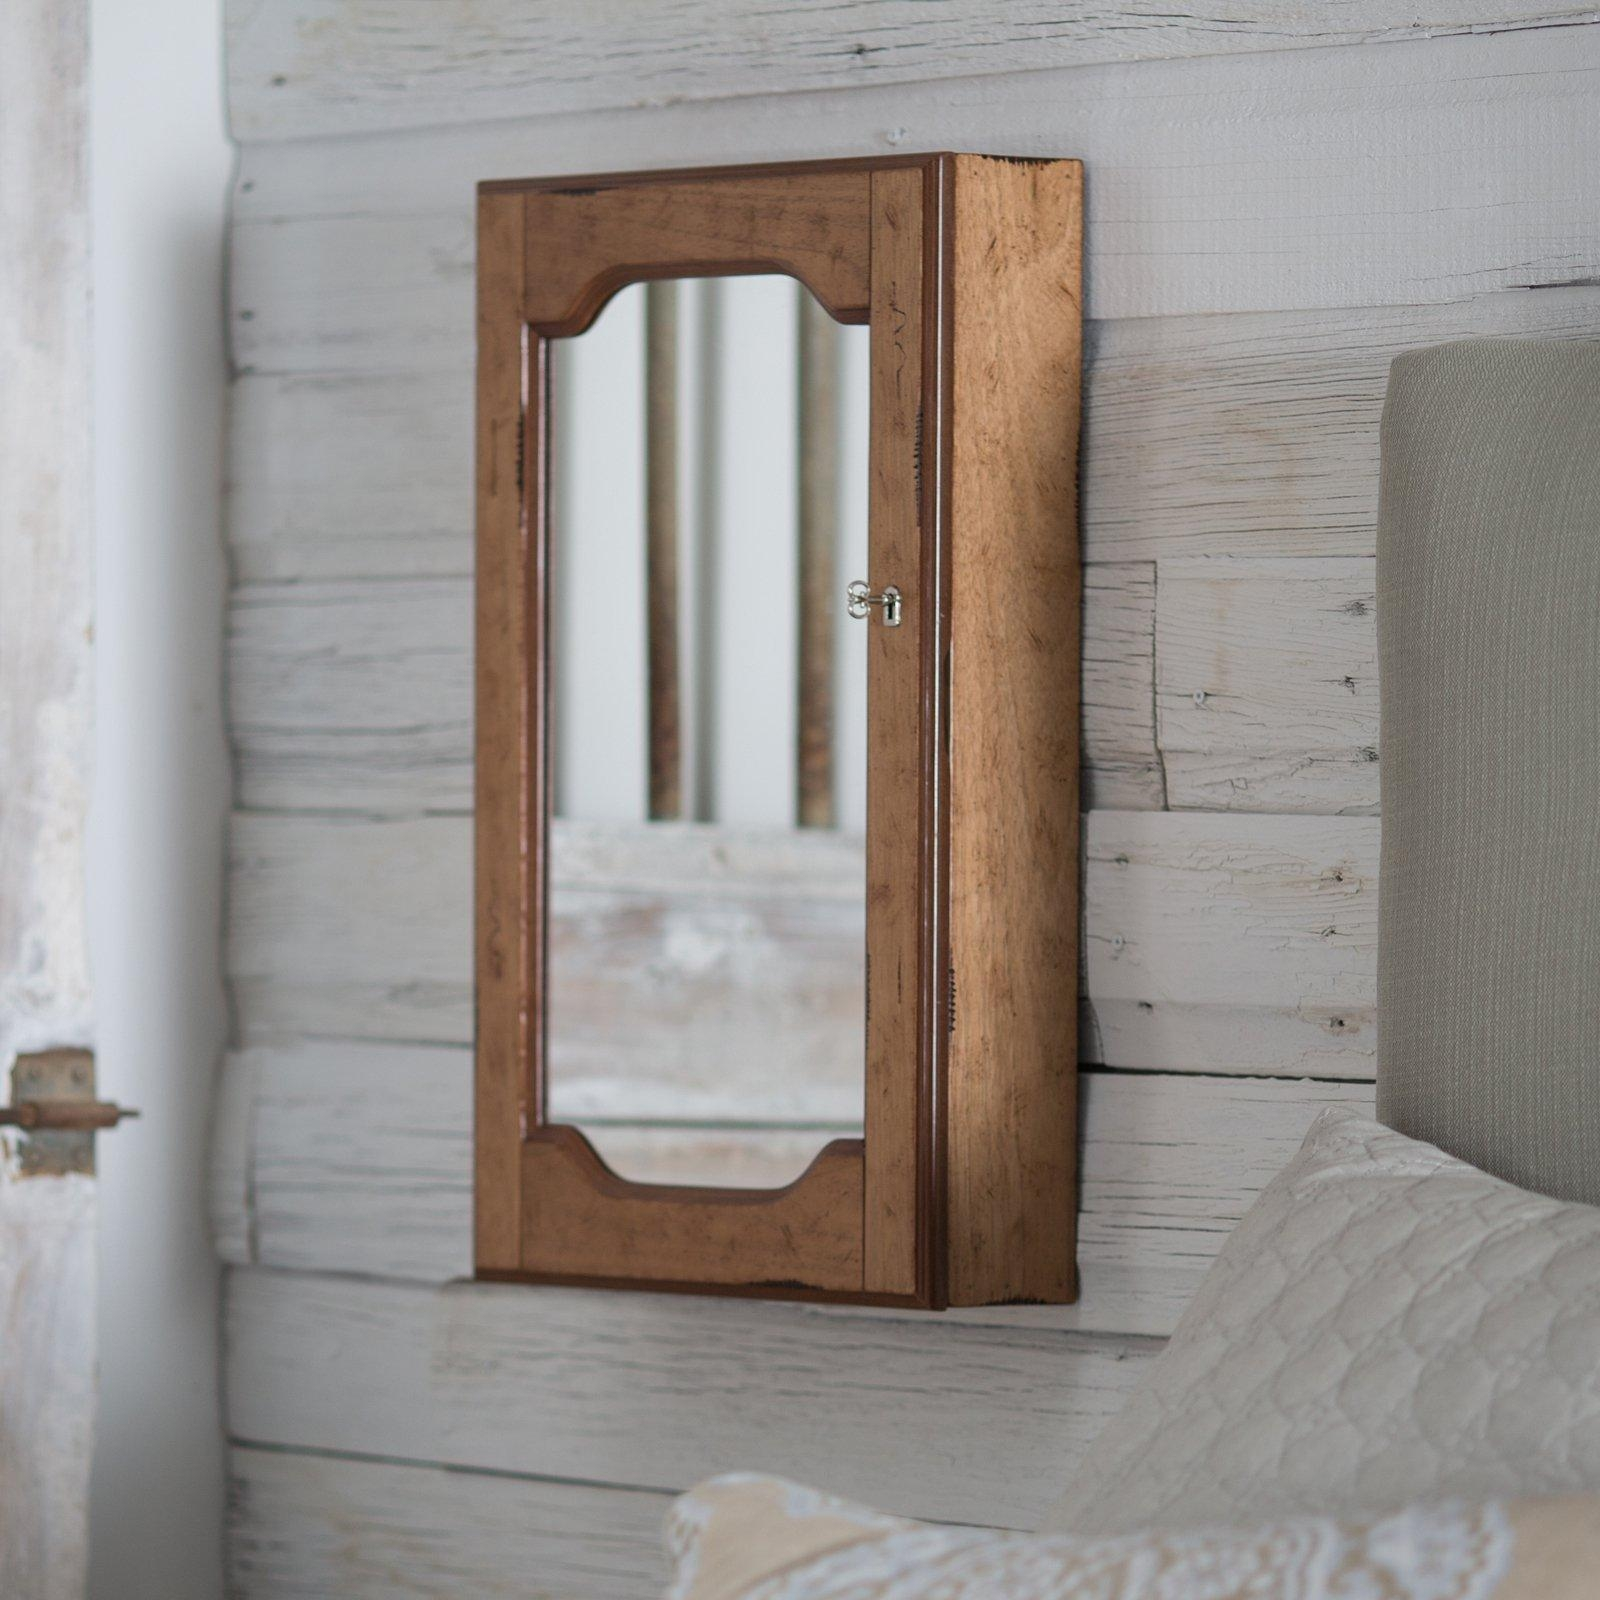 Classy Wall Mounted Mirrors Bedroom With Additional Bedroom With Wall Mounted Mirrors For Bedroom (Image 9 of 20)